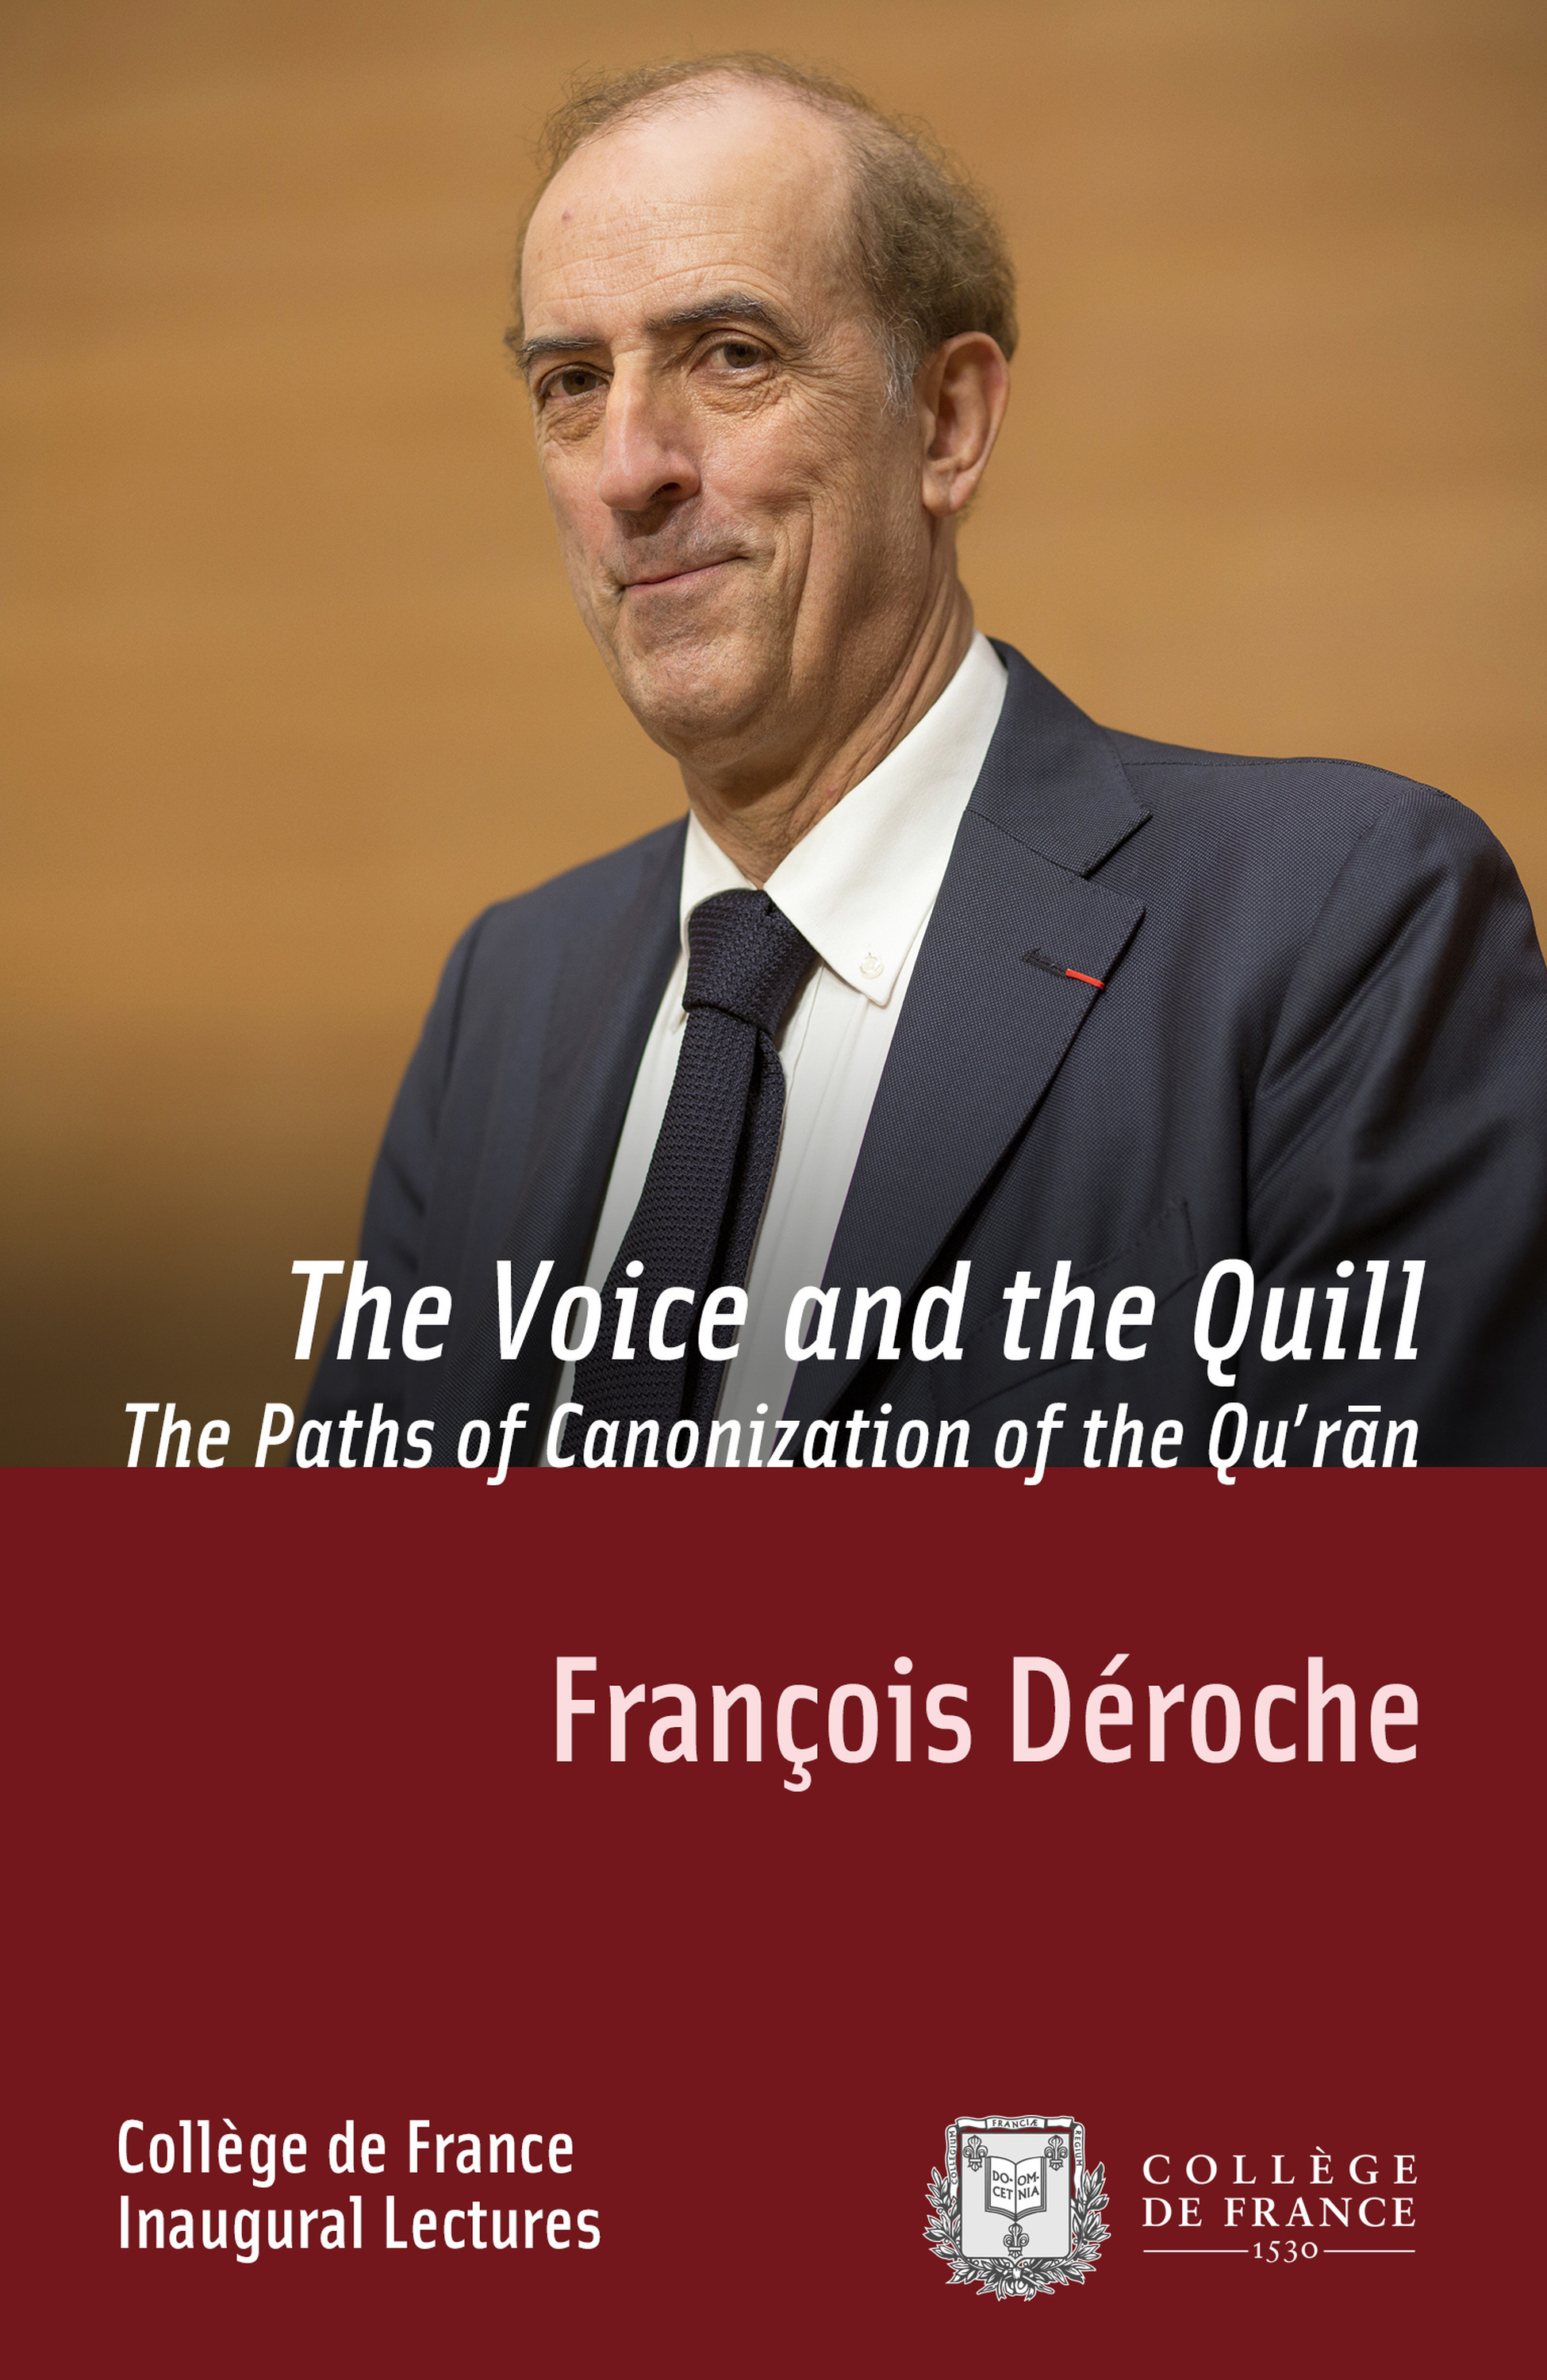 The Voice and the Quill. The Paths of Canonization of the Quran